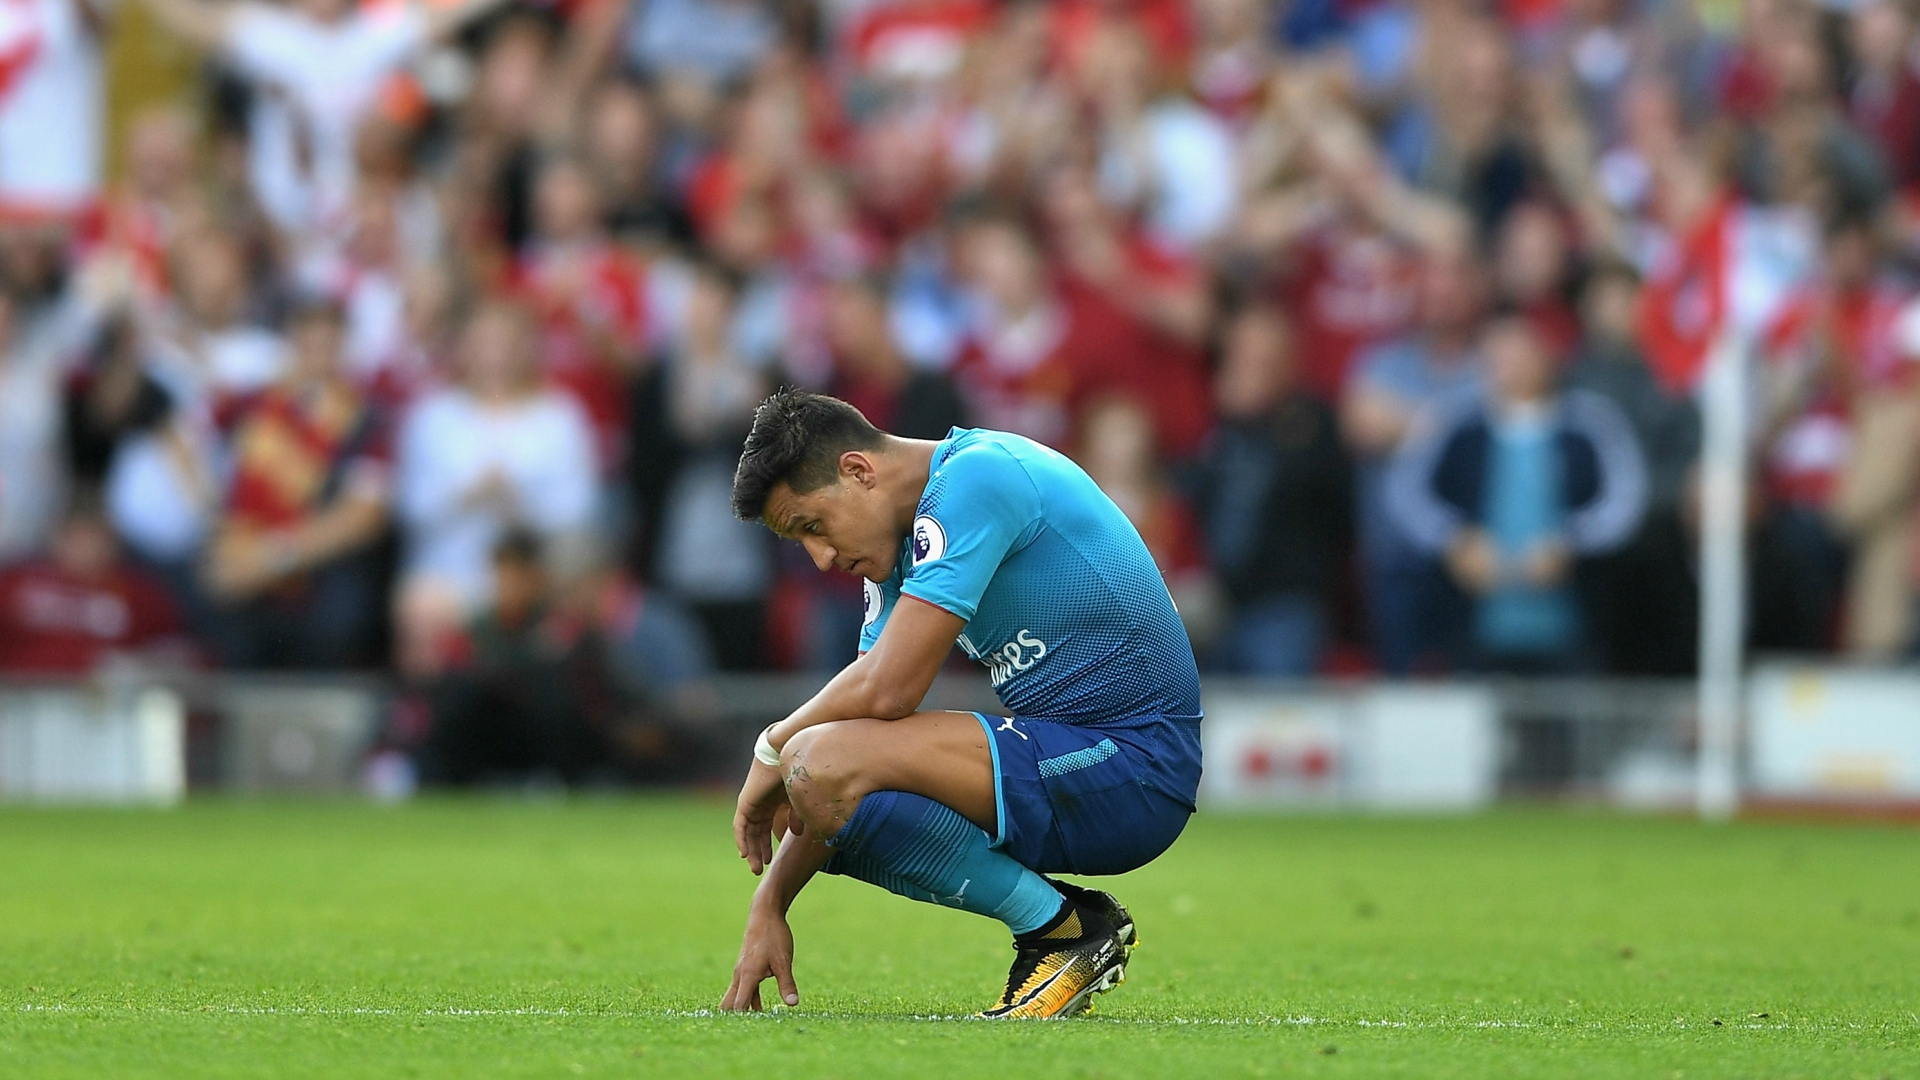 Pep Guardiola wants Manchester City to sign Arsenal striker Alexis Sanchez